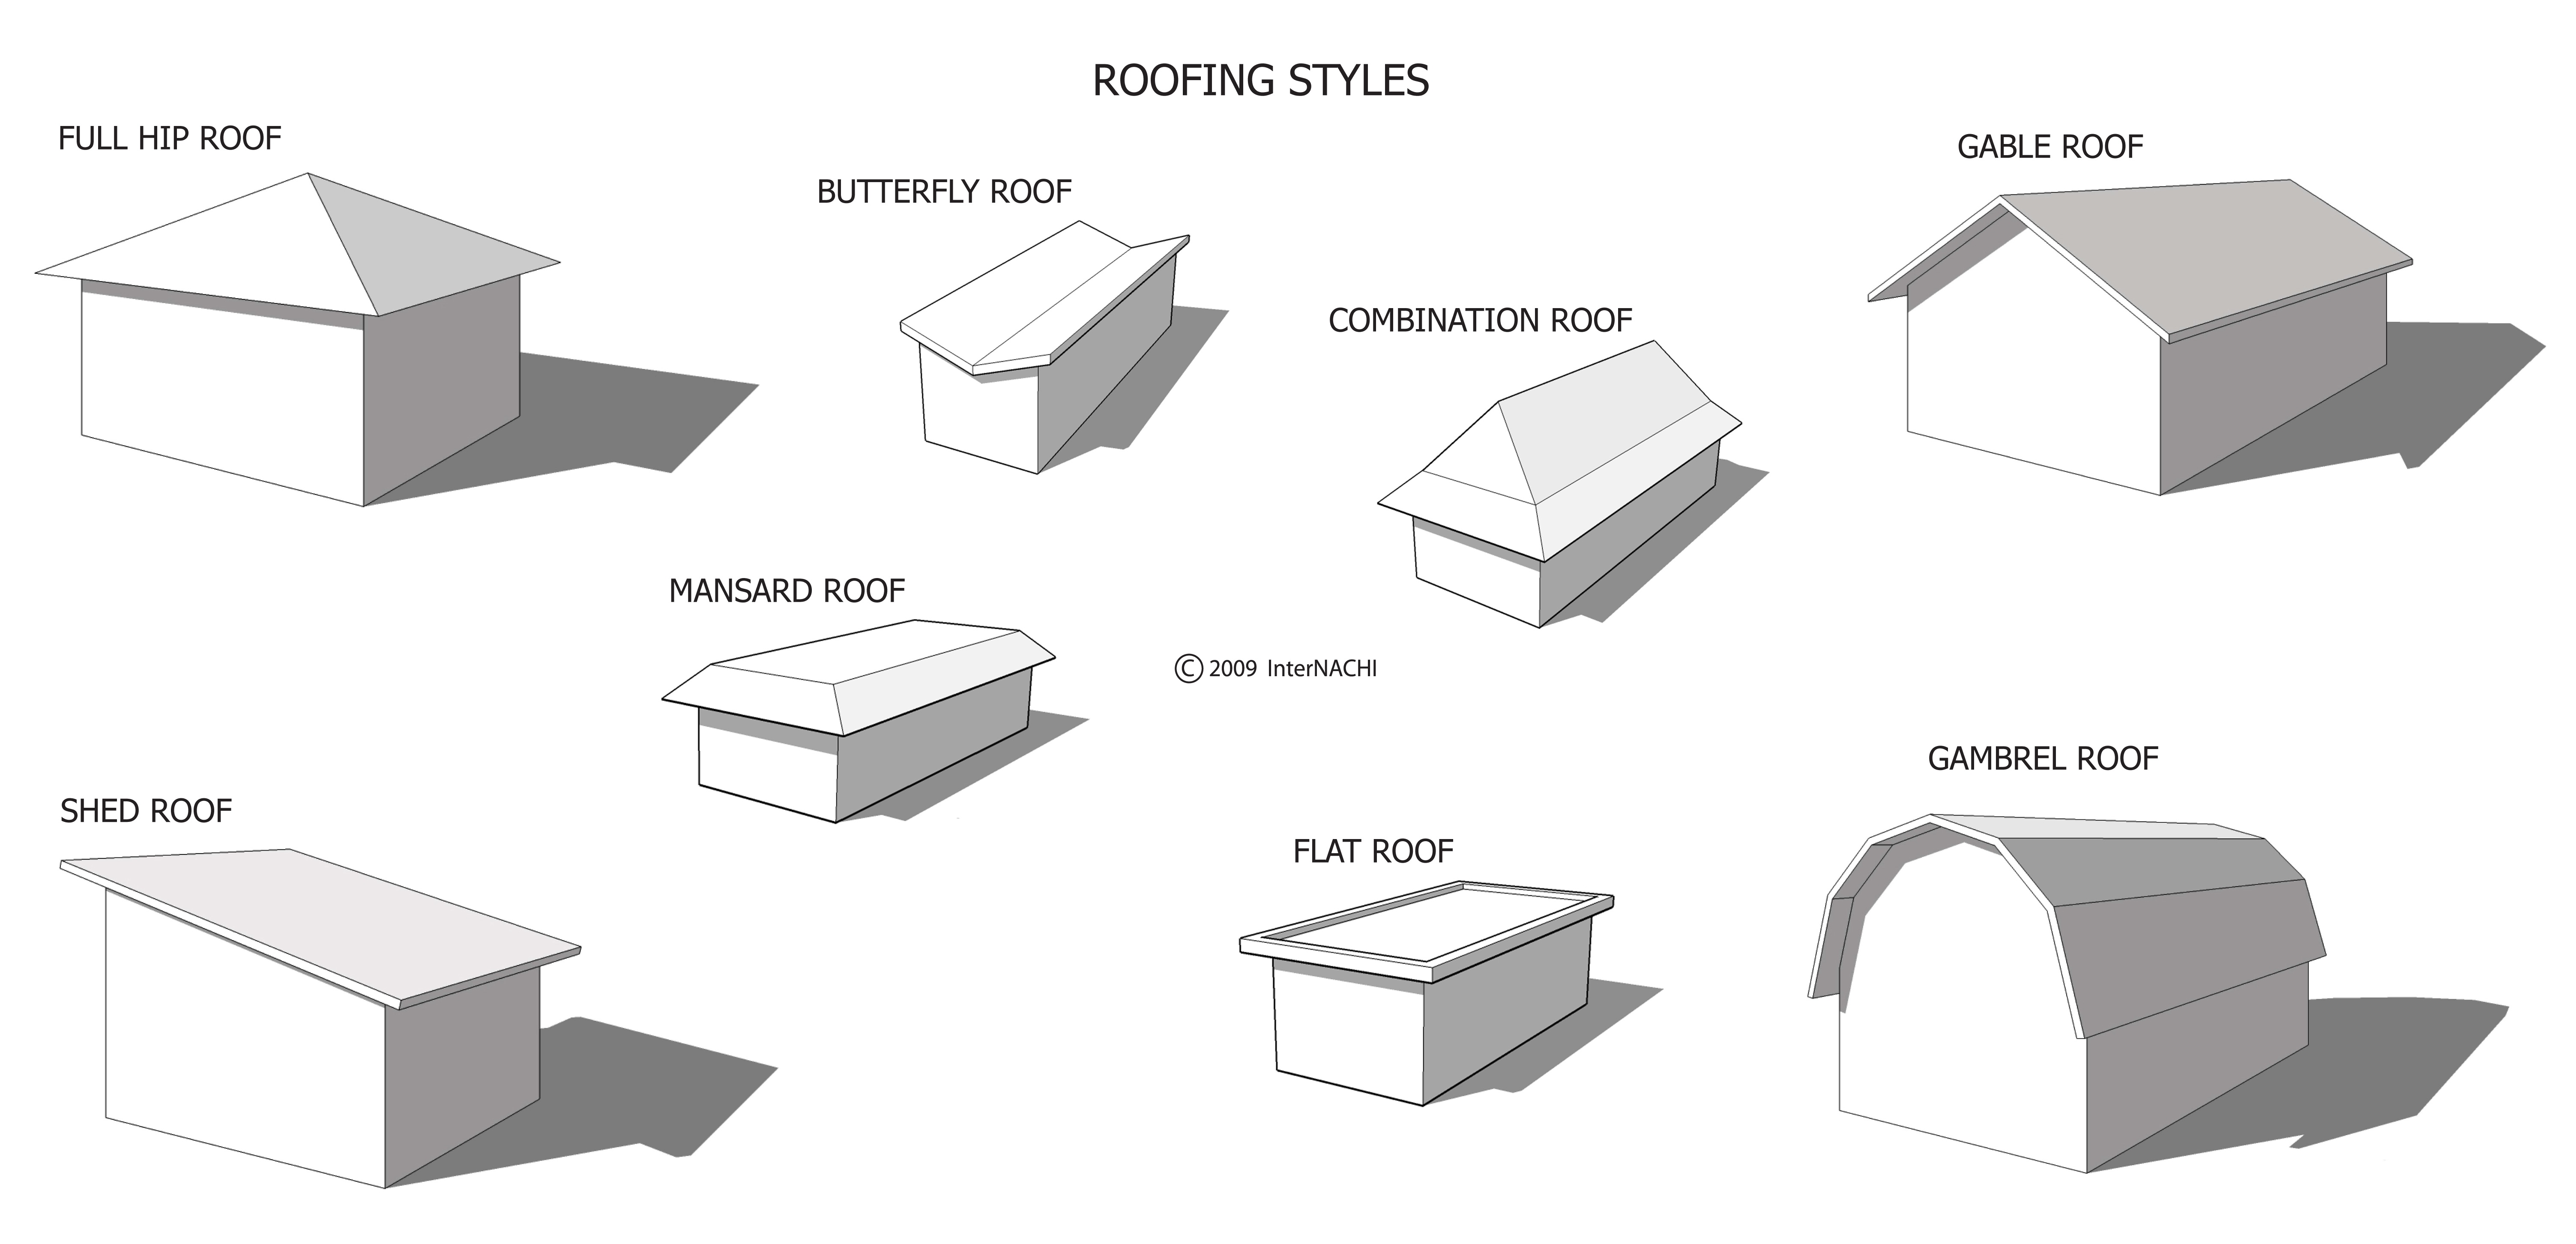 Roofing styles.